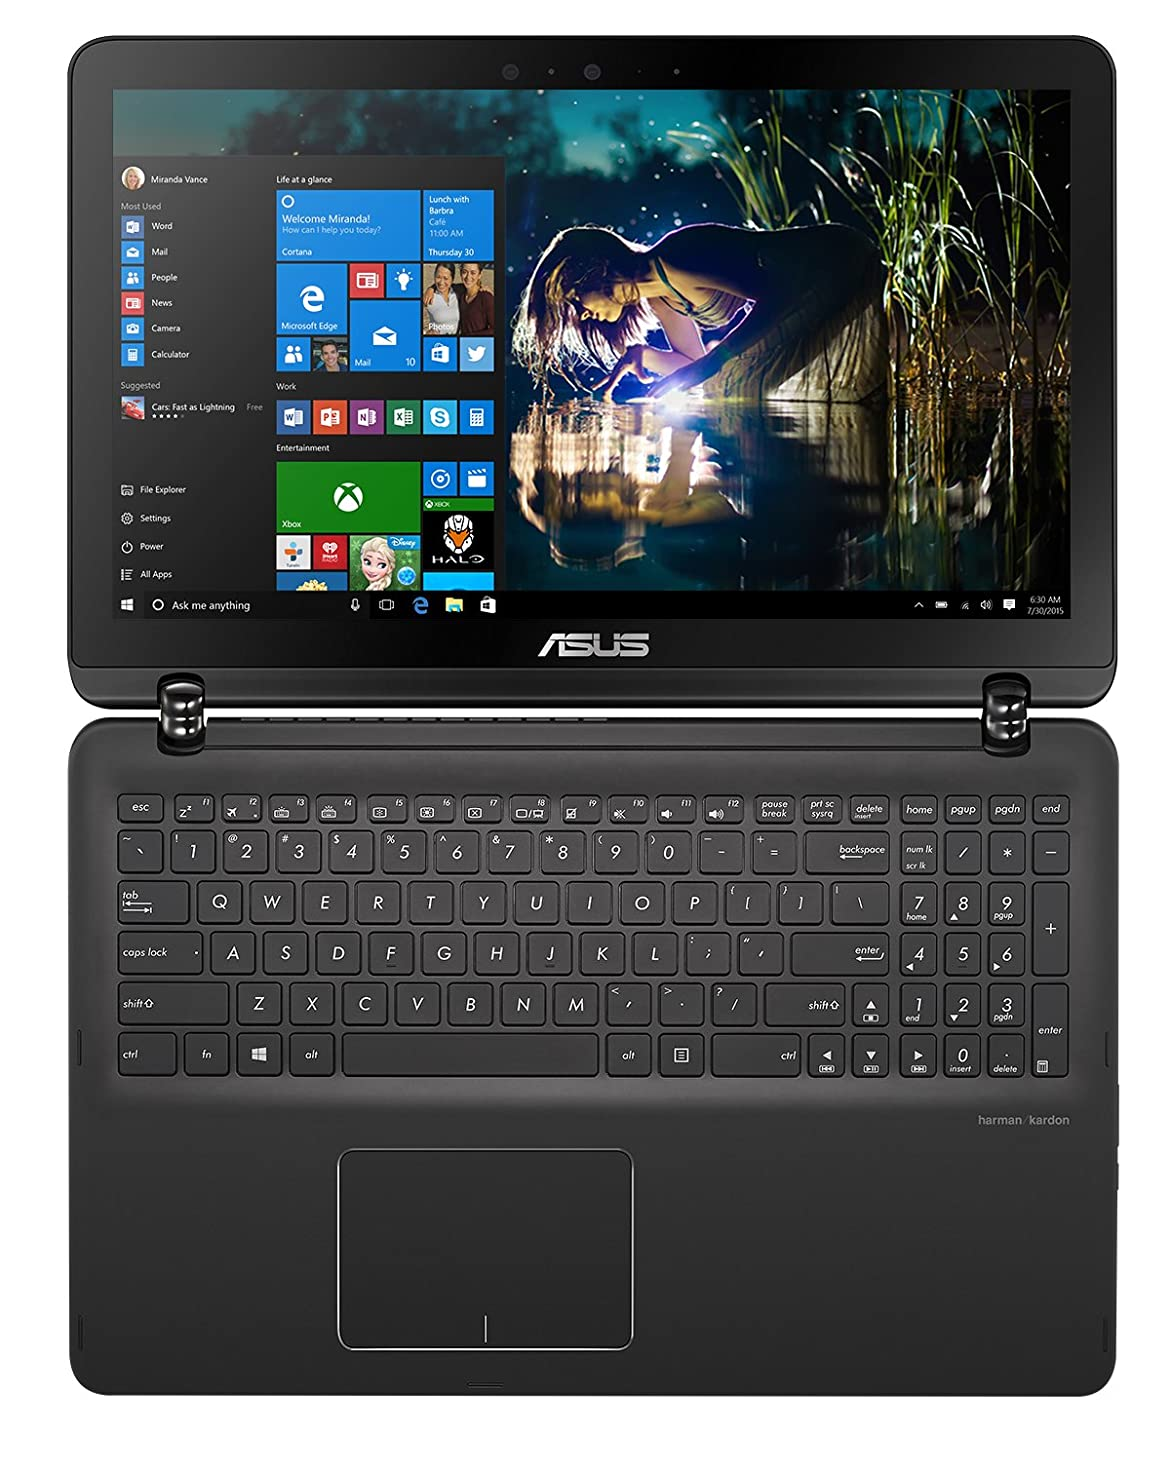 ASUS 2-in-1 Notebook PC (Q534UX-BI7T22) Intel Core i7, 16GB RAM, 512GB SSD + 2TB HDD, WIn10 64 xmkpi455634